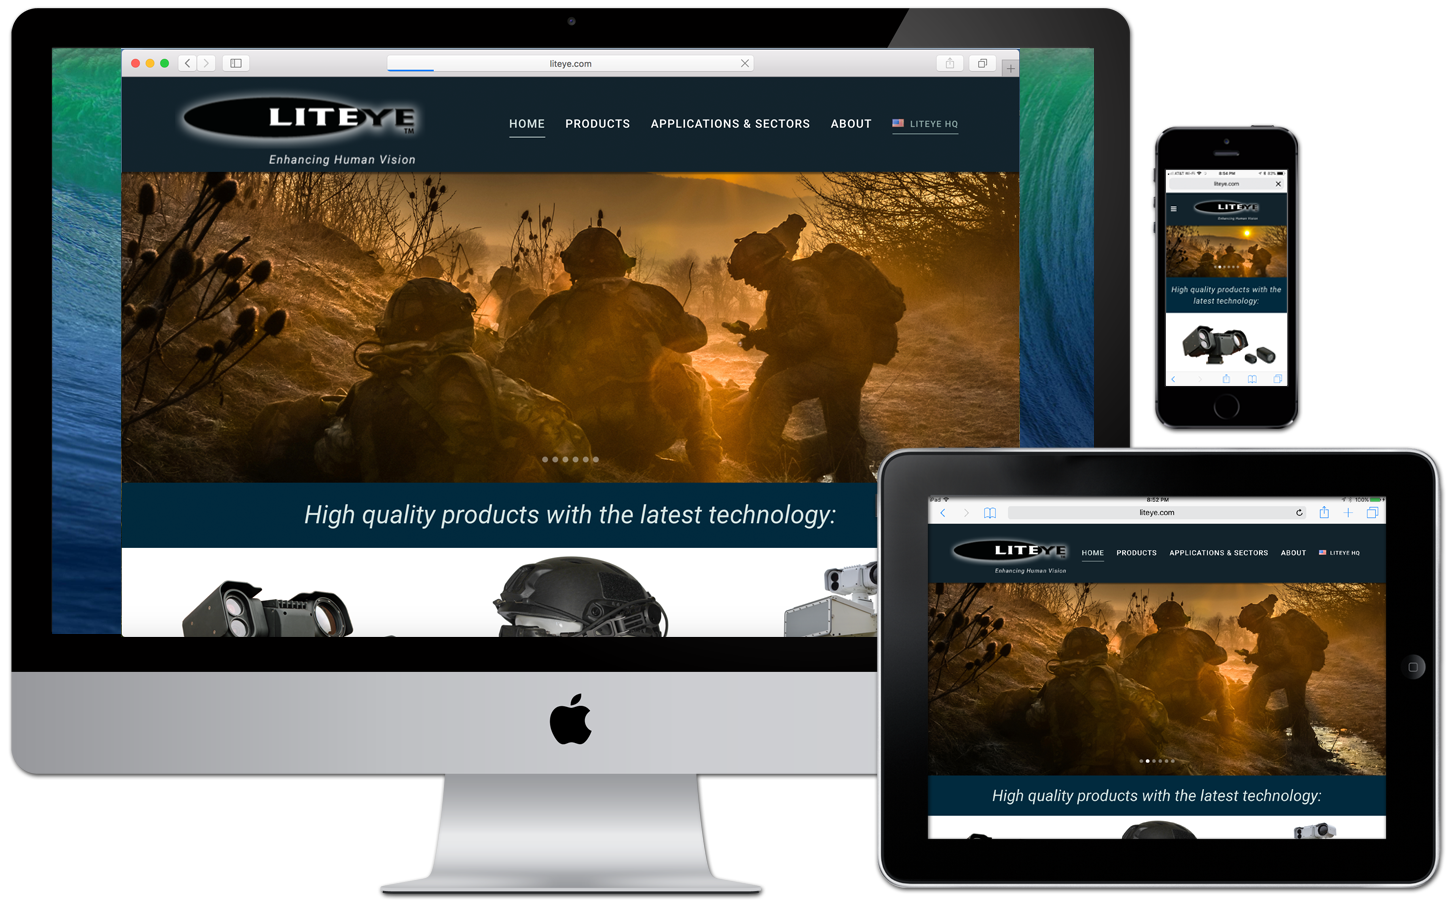 Defense Contractor Client desperately needed to bring their website into the current decade. While the site was largely text and information-based, I helped them create something much more visually appealing for business-to-business clientele.